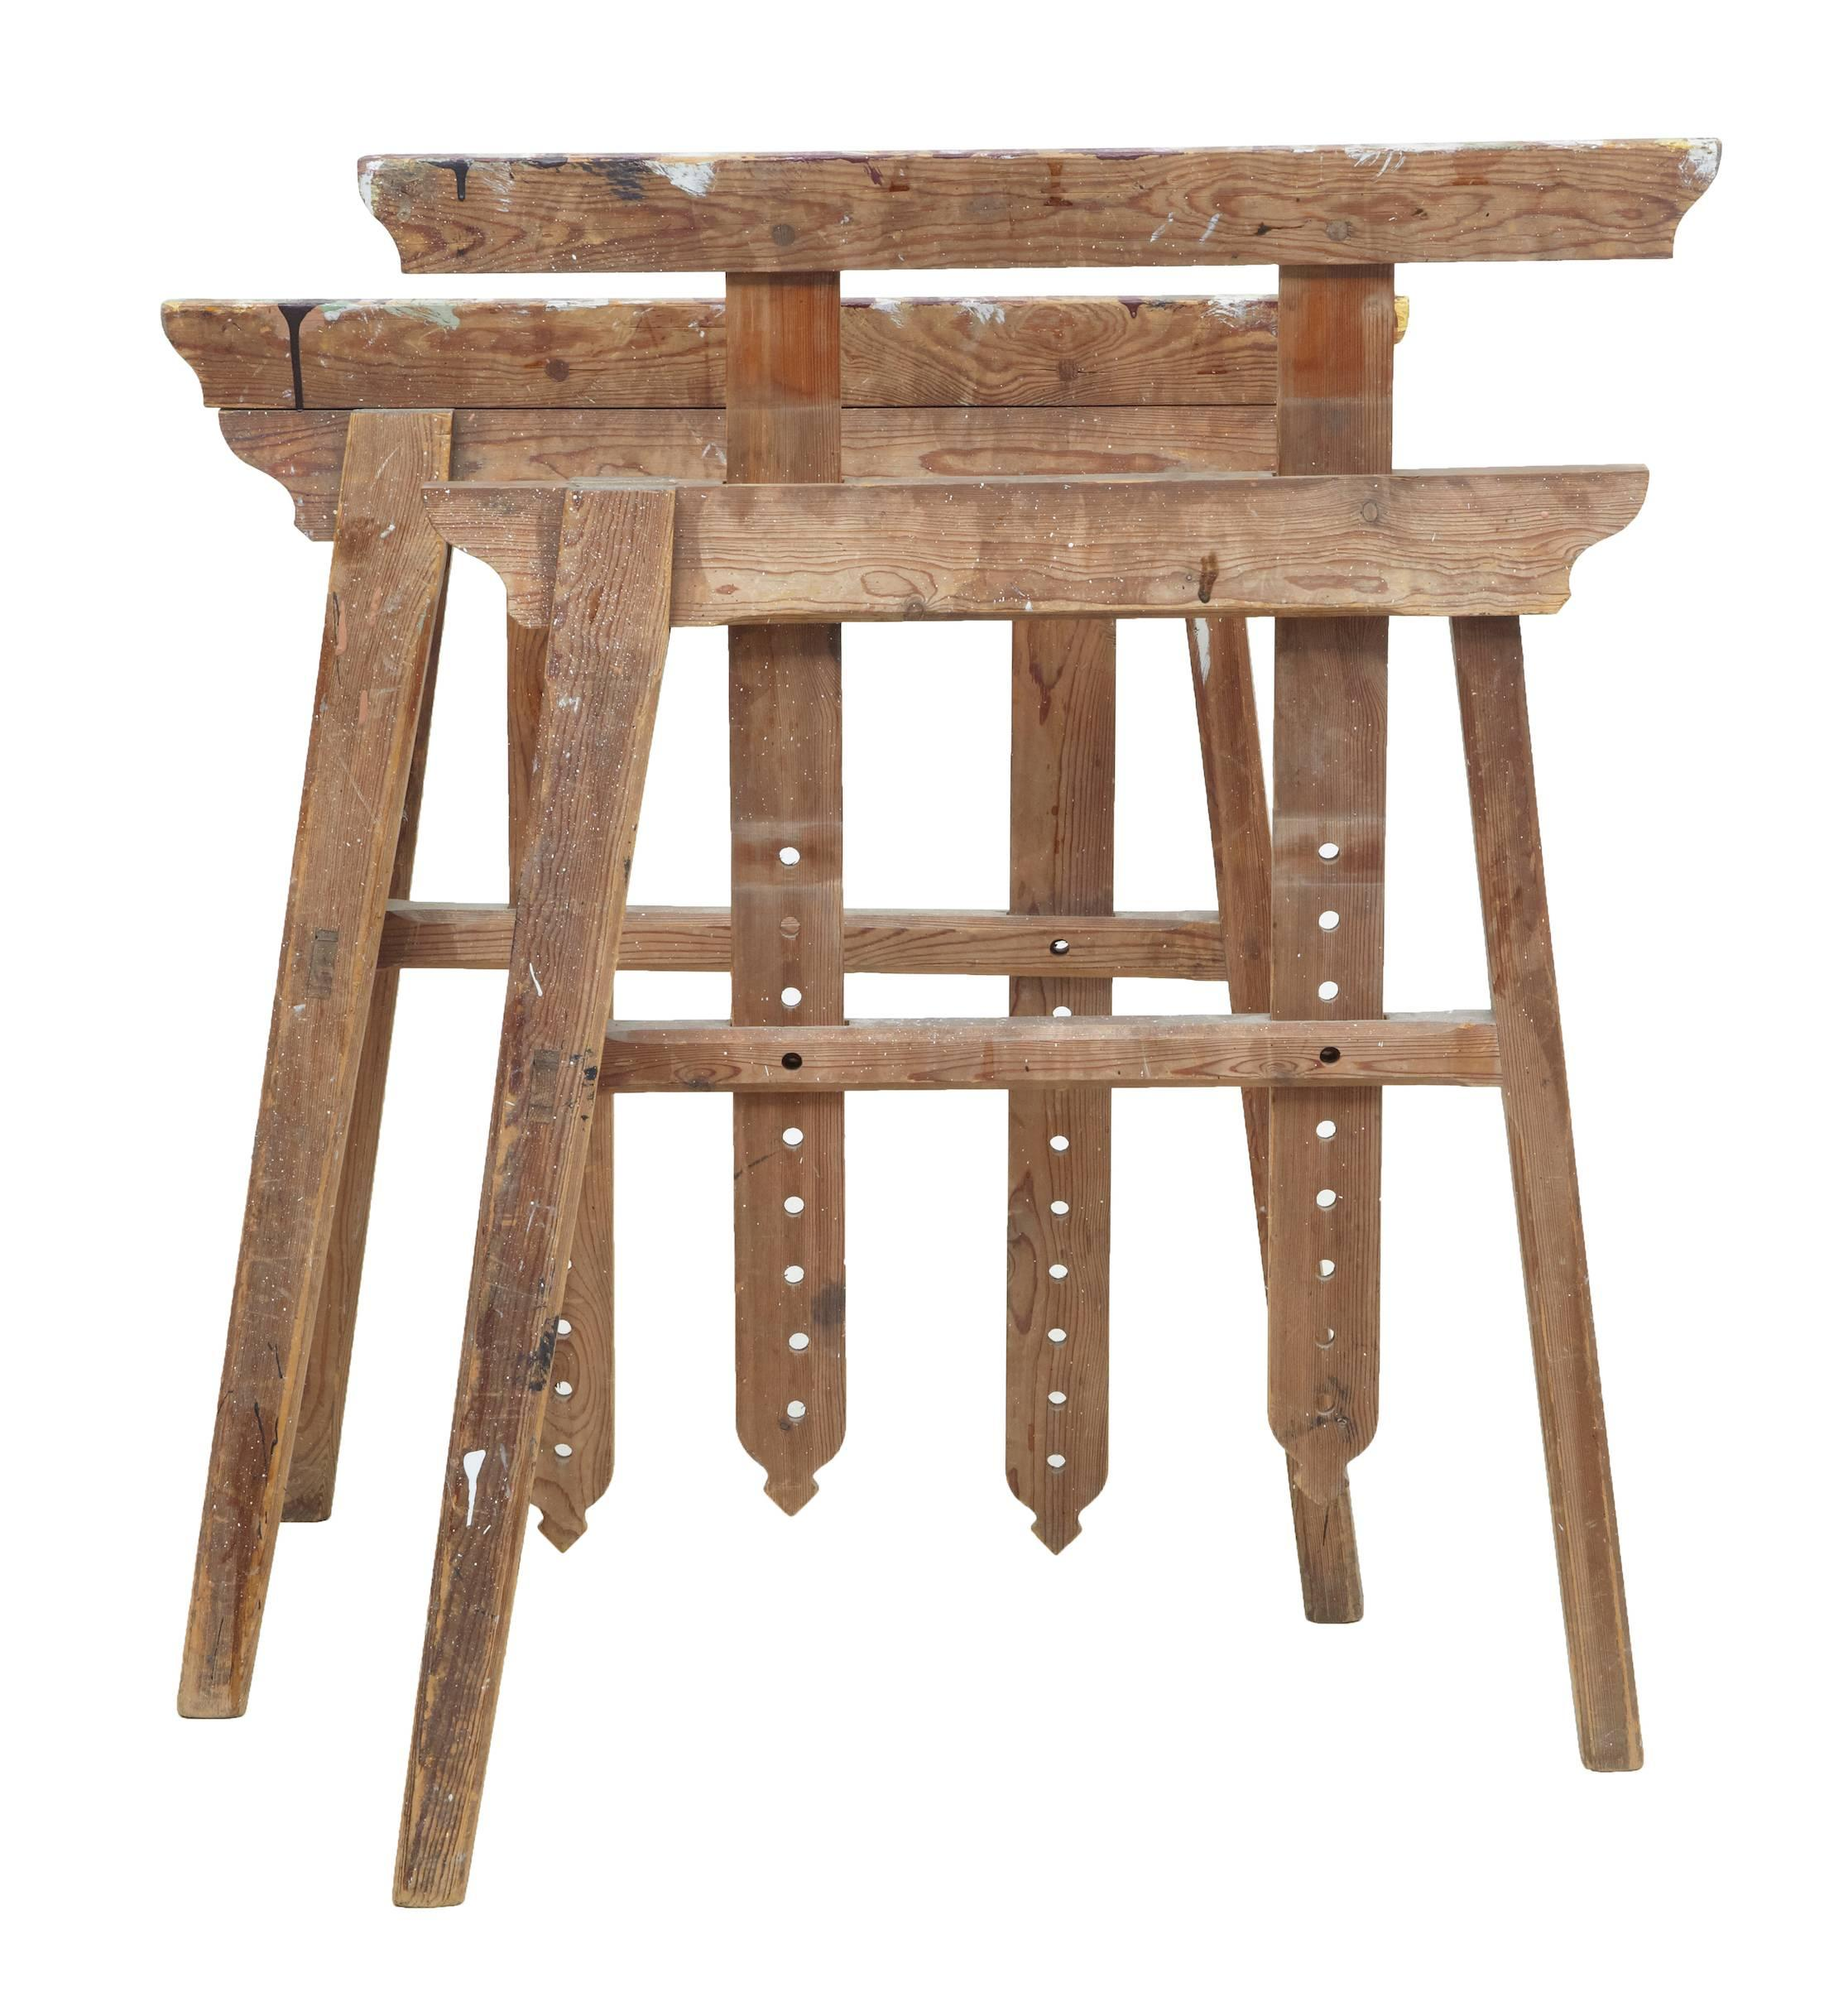 Used Trestle Tables #33 - Fine Pair Of Trestle Table Bases In Used Condition. We Think These Trestles  Would Make